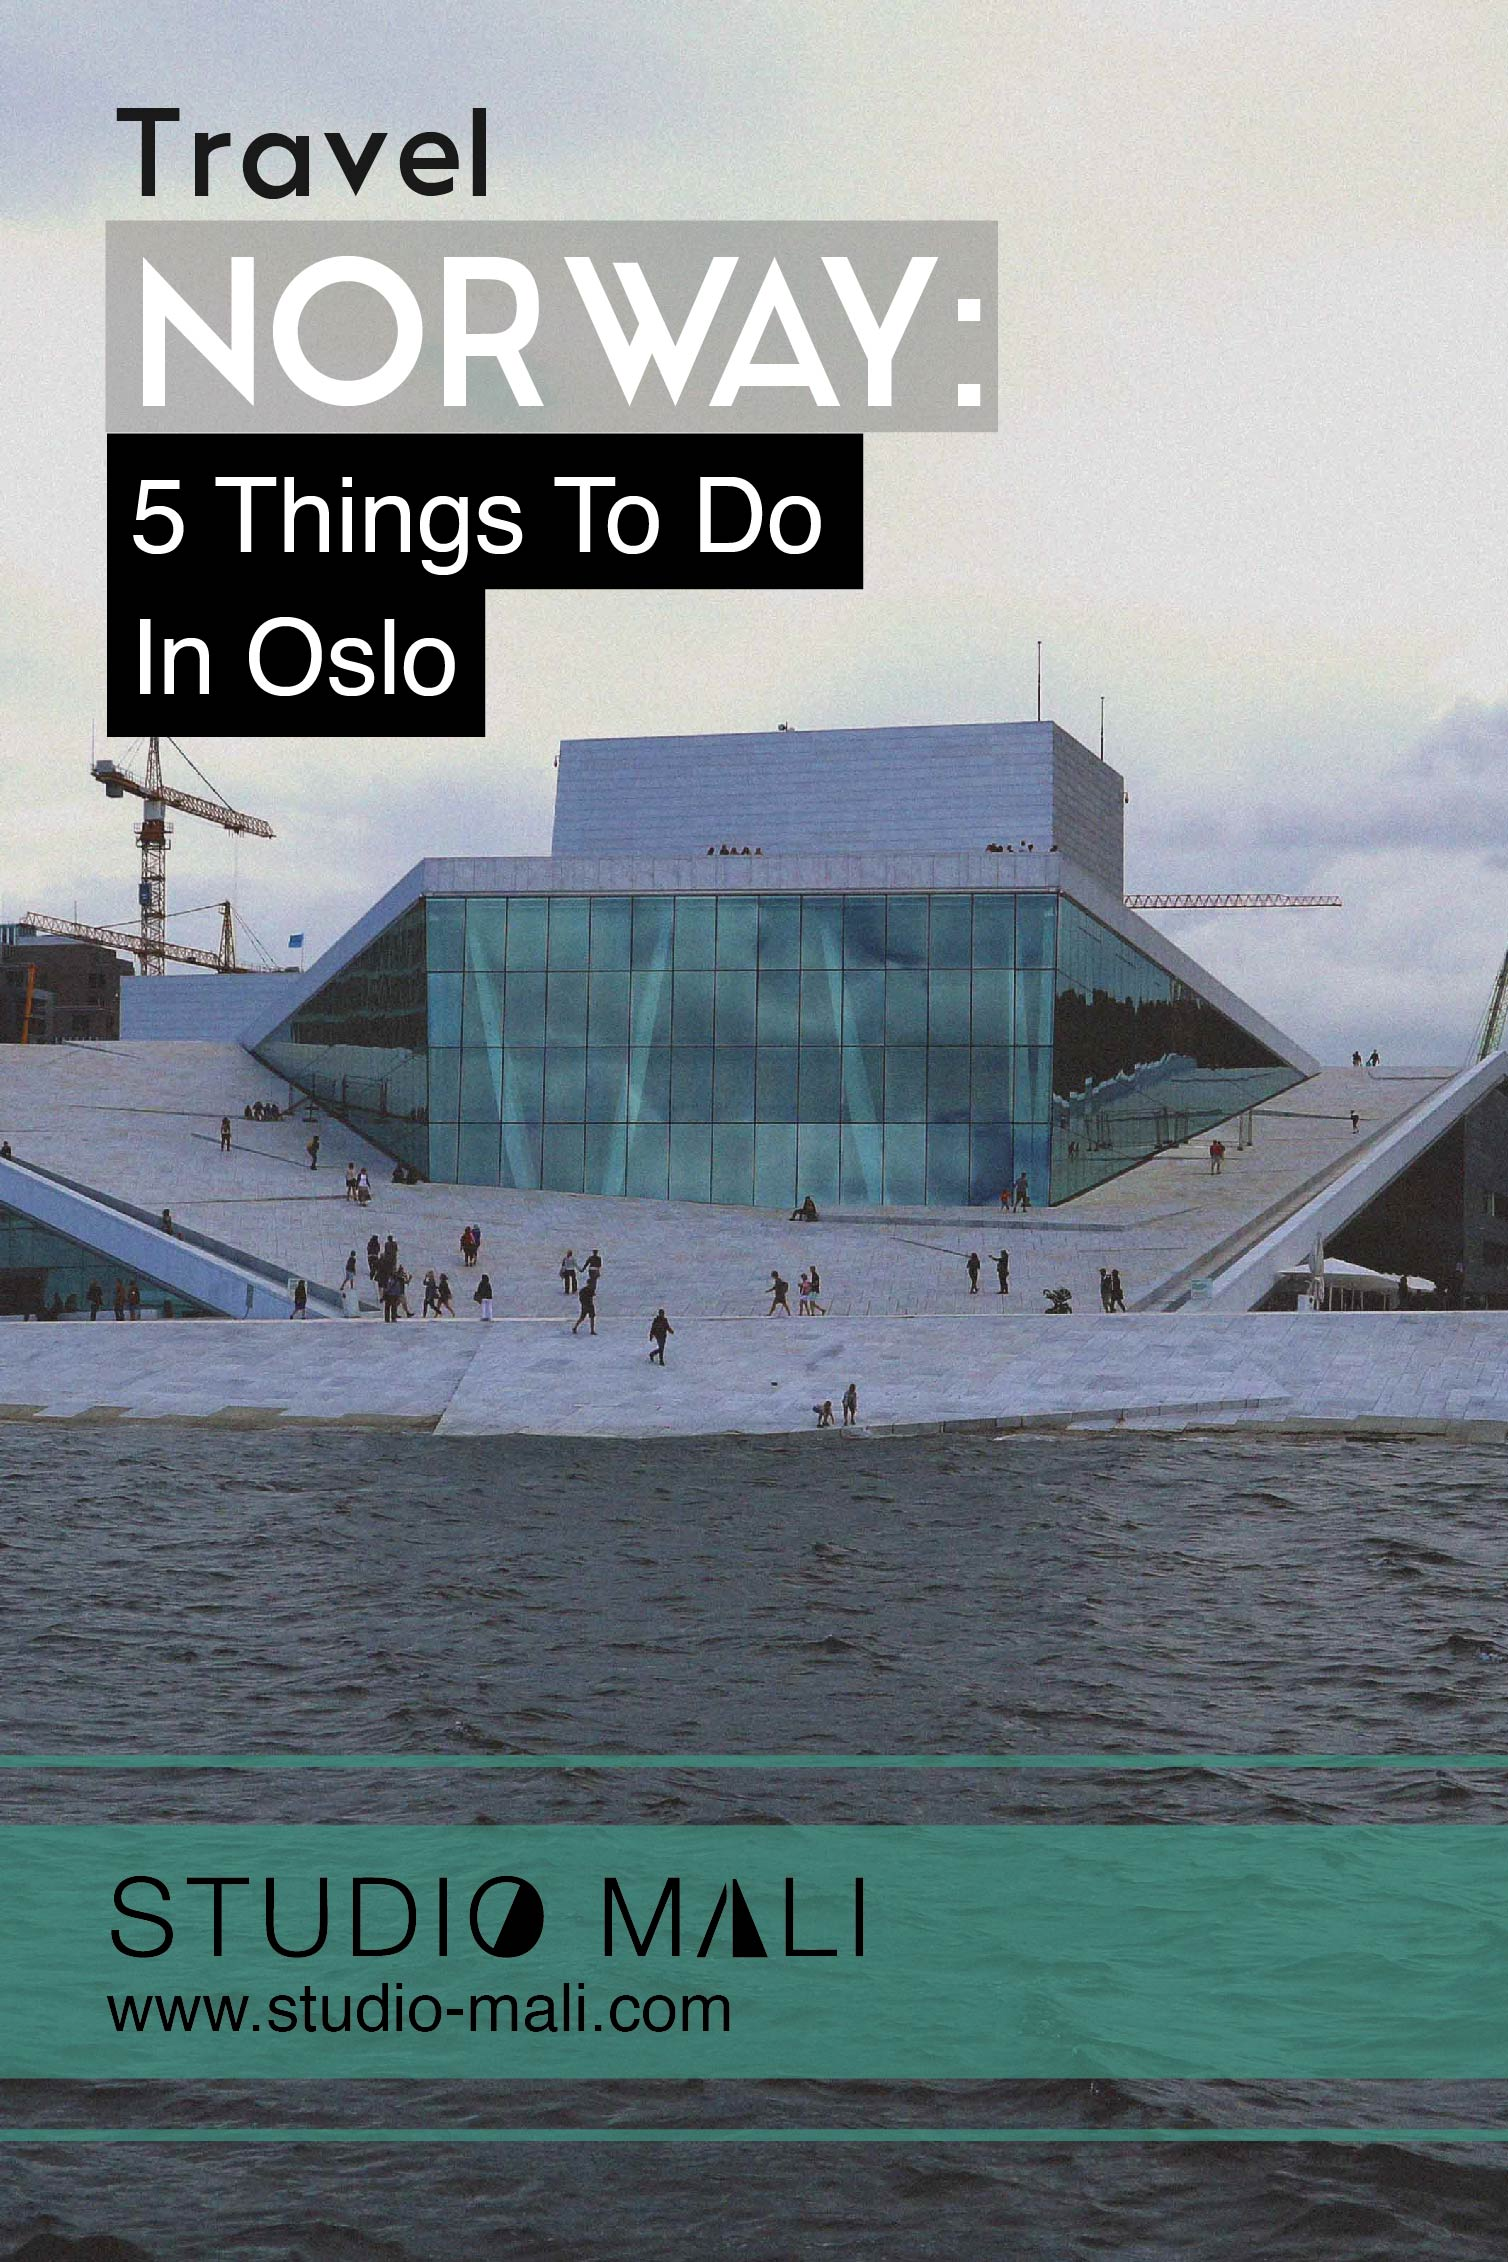 Norway - 5 Things To Do In Oslo, by Studio Mali.jpg